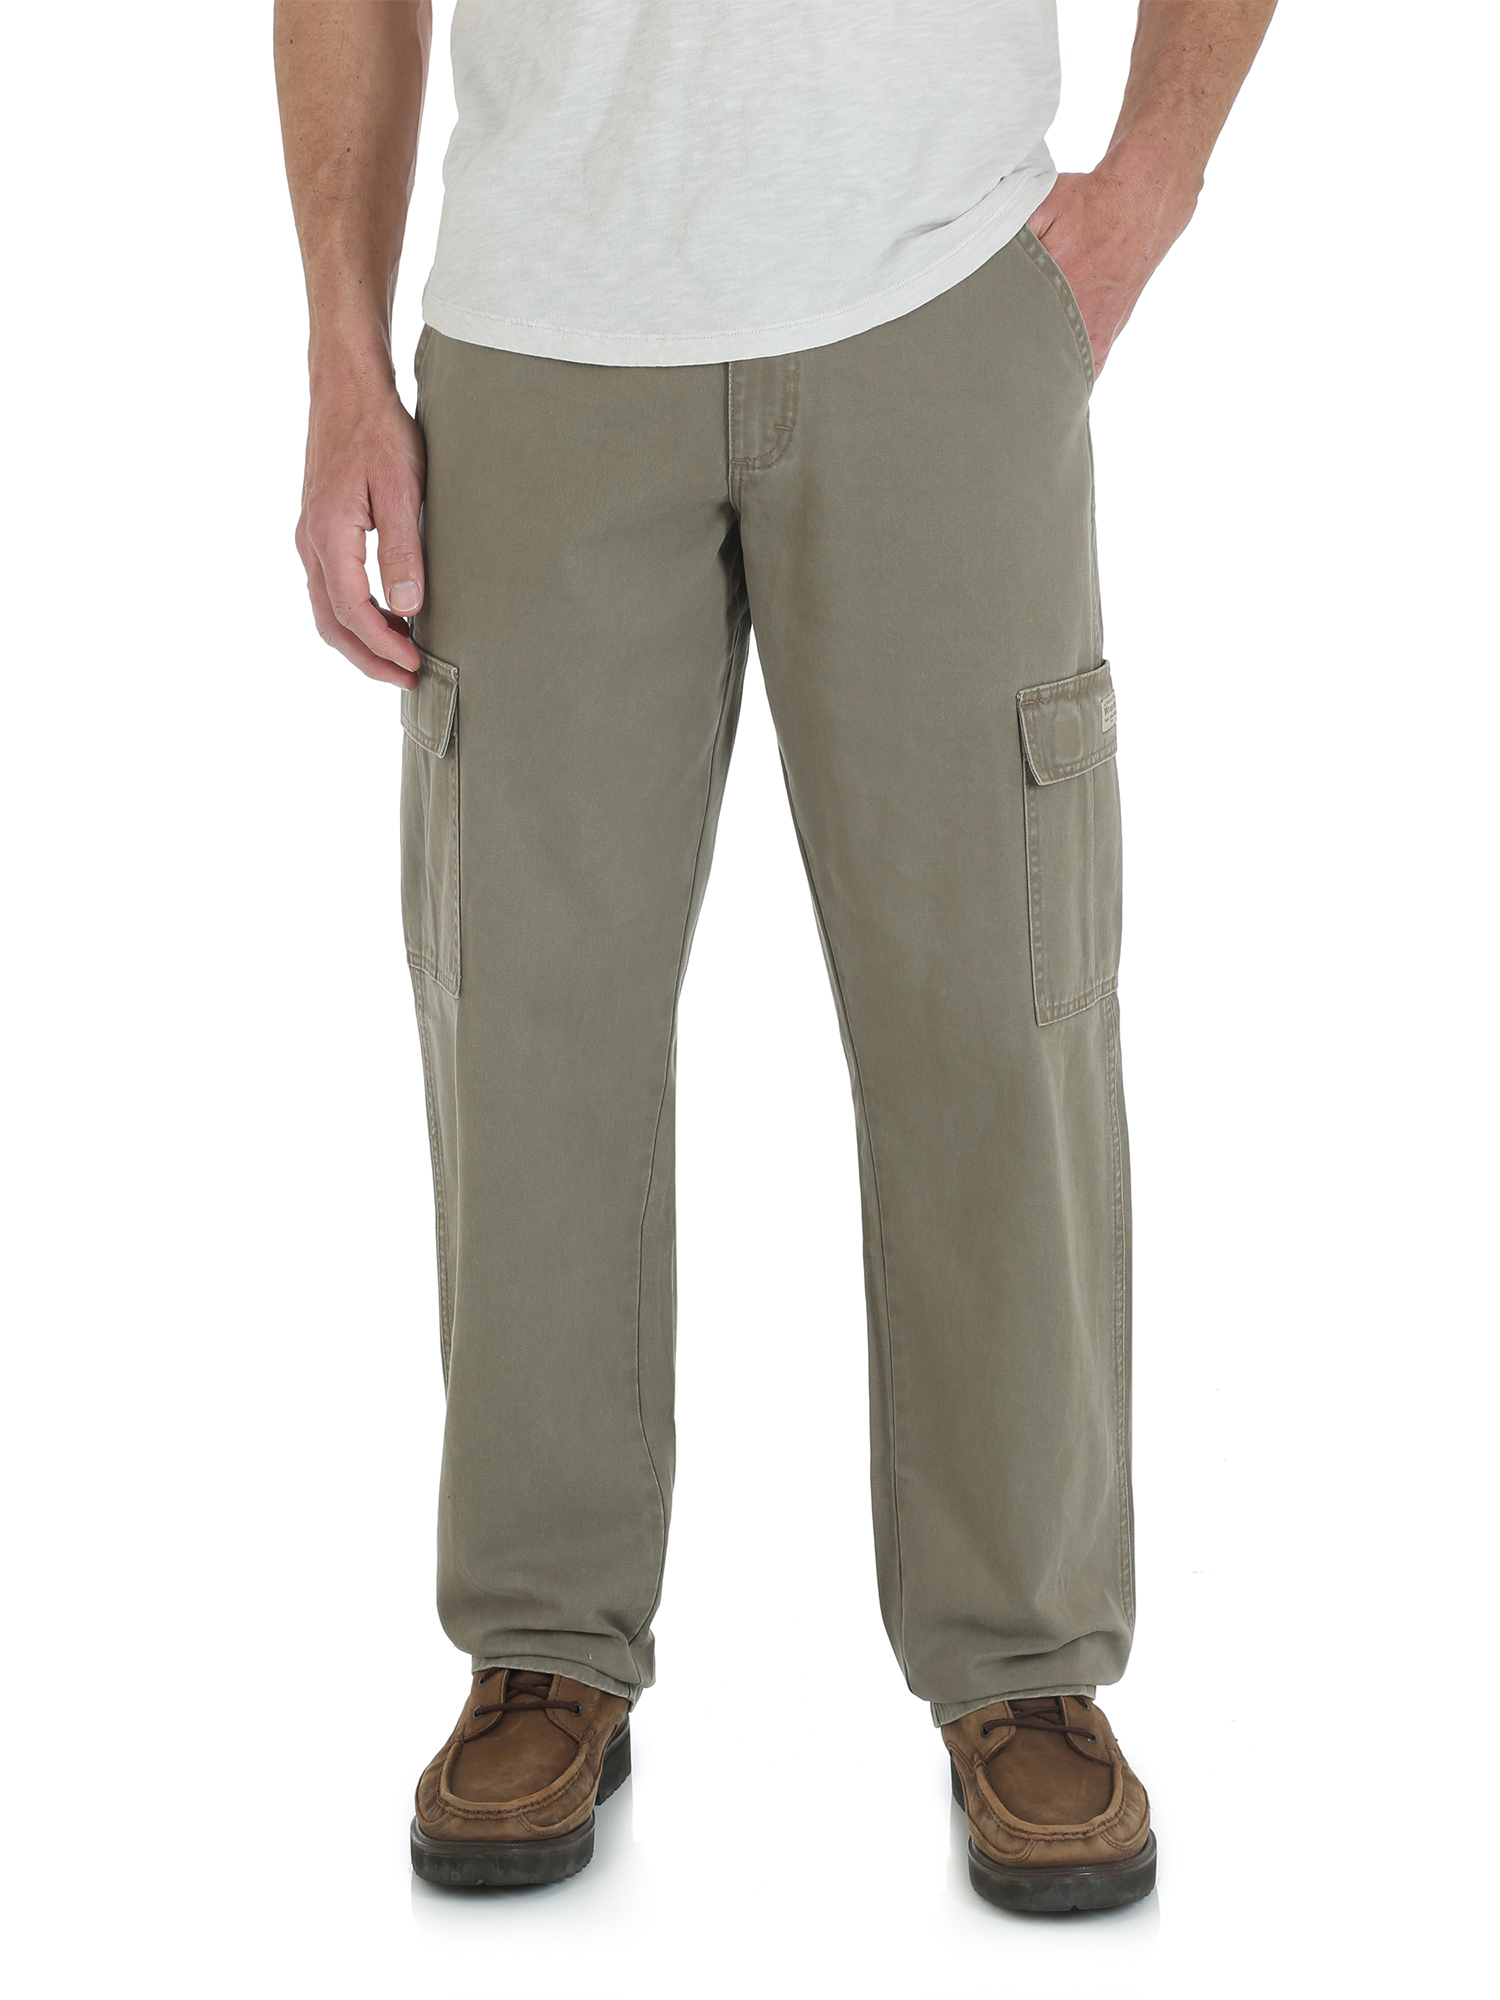 Men's Comfort Solution Series Cargo Pant